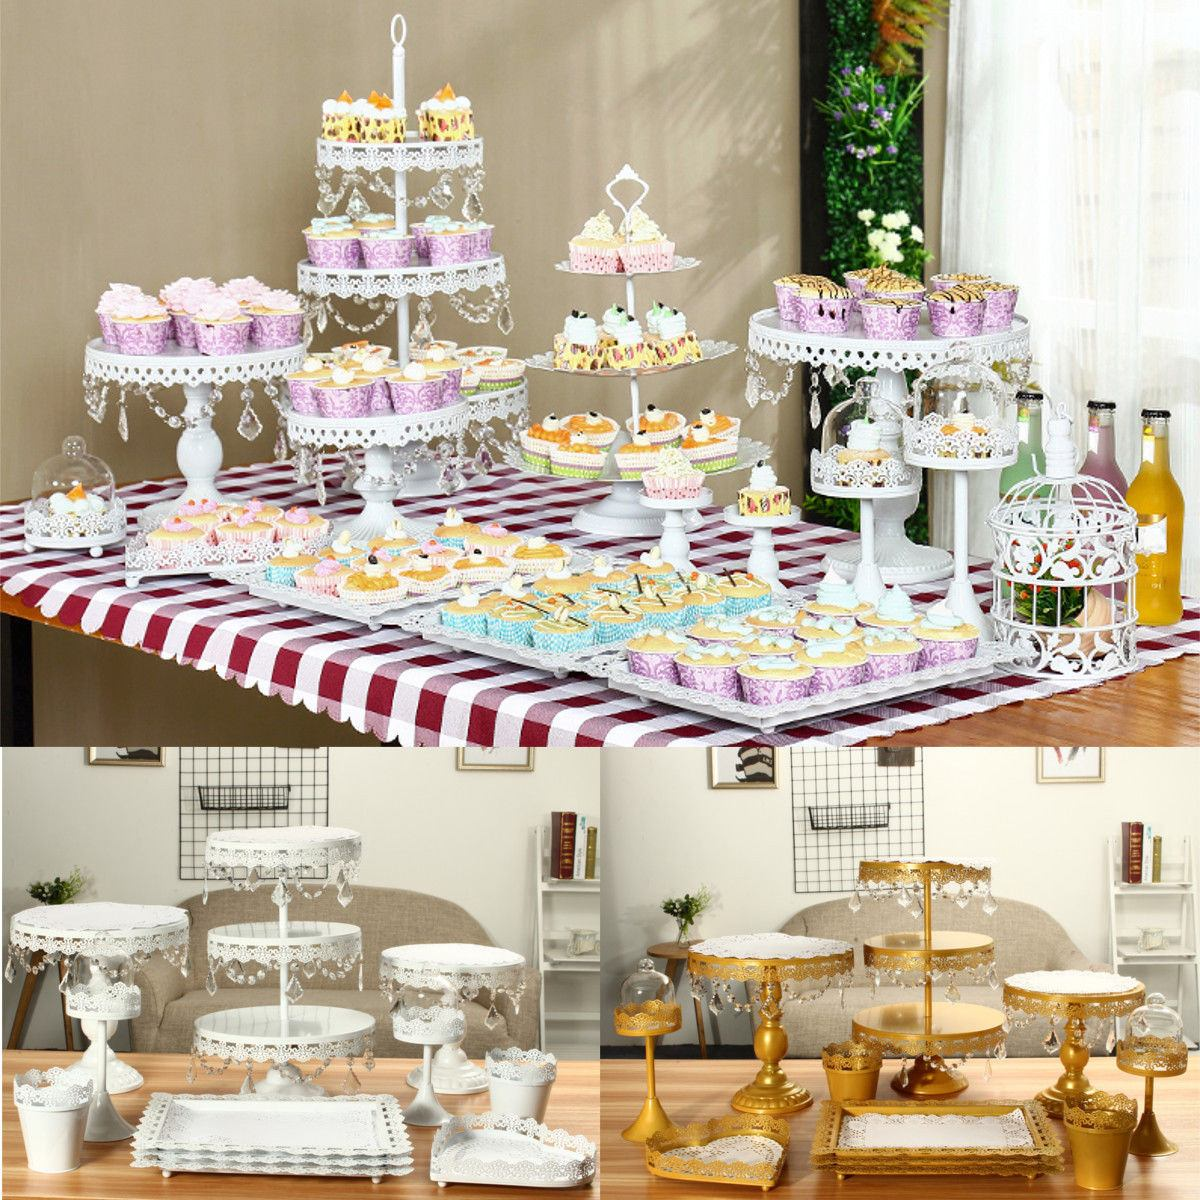 Crystal Metal Plate Cake Stands Display Cupcake Stand Birthday Party Wedding Decoration Party Bakeware Fondant Cake Display Kit